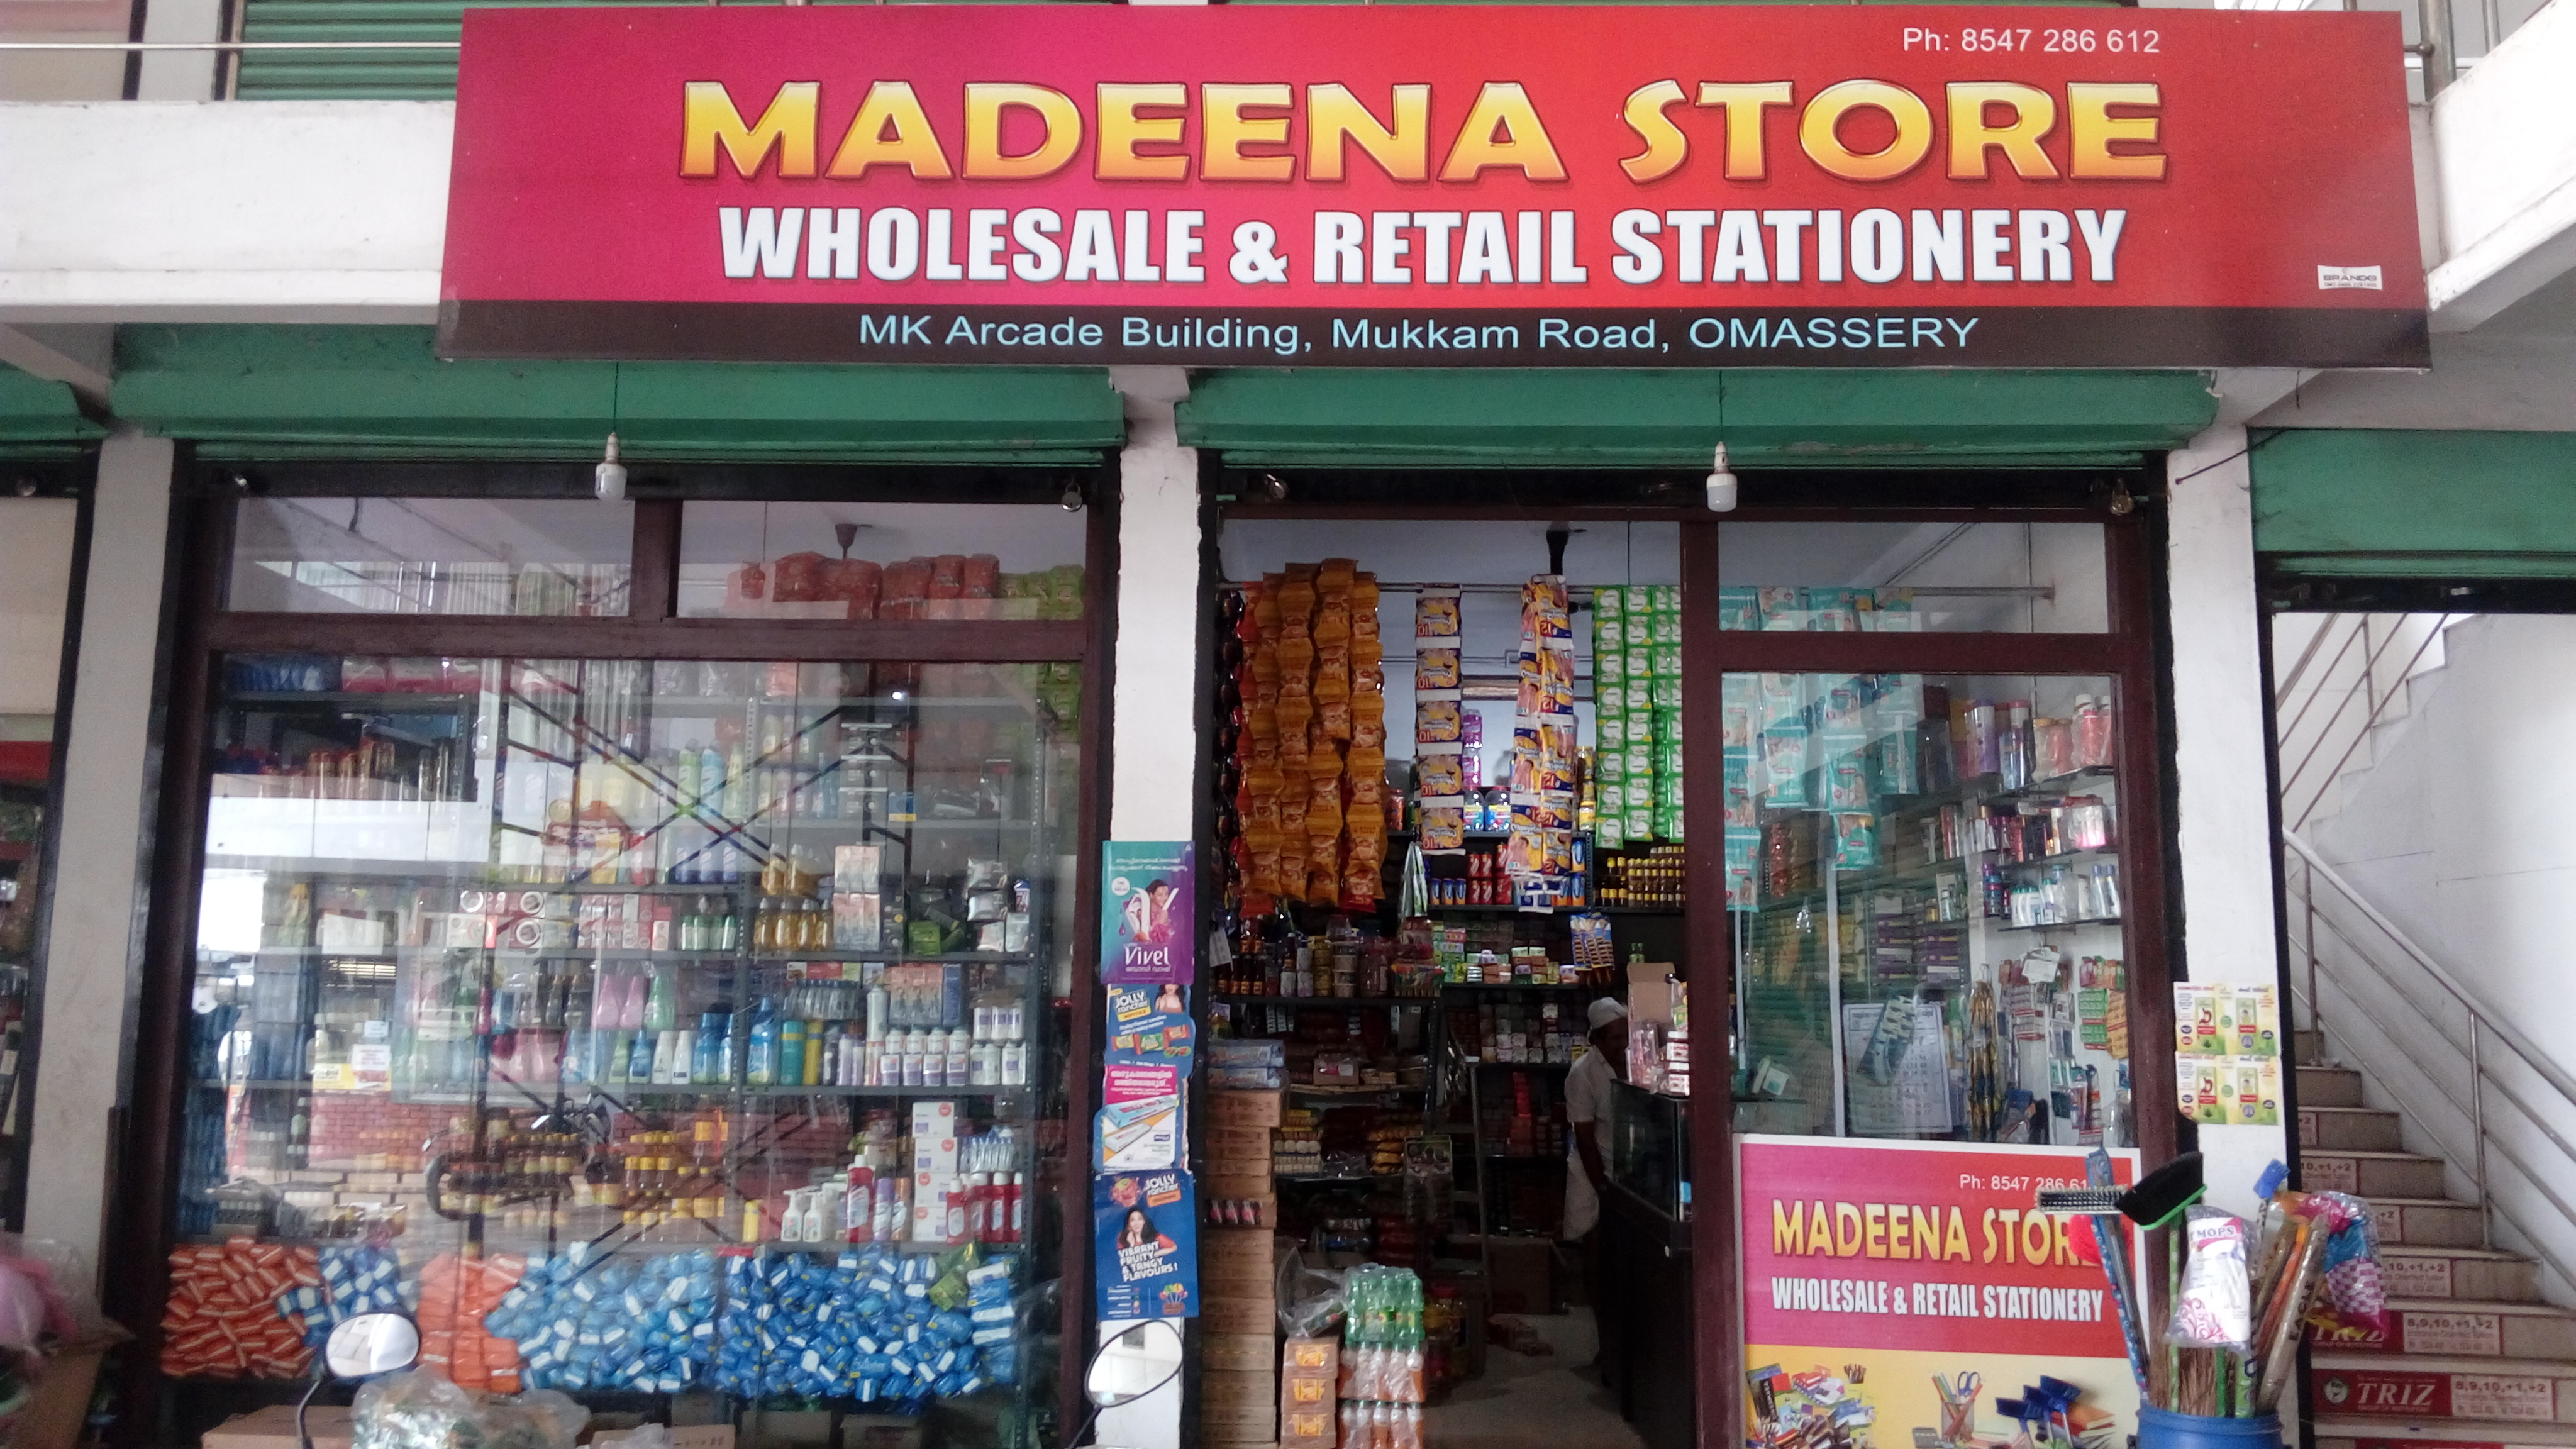 Madeena Store in Omassery, Local Search ,online marketing in Omassery, Seo in Omassery, Target ad in Omassery,digital marketing in Omassery ,affiliate marketing in Omassery ,social media marketing in Omassery,marketing strategy in Omassery,email marketing in Omassery ,marketing plan in Omassery,advertising agency in Omassery,Omassery Bus Time Online,Omassery Taxi Numbers, Omassery Shops and Business Details, Omassery ,omasseryonline, Omassery Live , Omassery Updates, Omassery today,  Omessery, Omassery Blood bank ,Omassery Taxies, Omassery Travels, Omassery Hospitals, Omassery Bus time, Omassery Careers and Jobs , calicut jobs , job, hire, new jobs in the Worldwide, Omassery Calicut, Omassery Auto, Omassery Cars, Omassery Tumbo, Omassery Jeep, Omassery Bus, Omassery Lorry, Omassery Pickups, Taxi Contact Numbers Omassery, Bus time Omassery